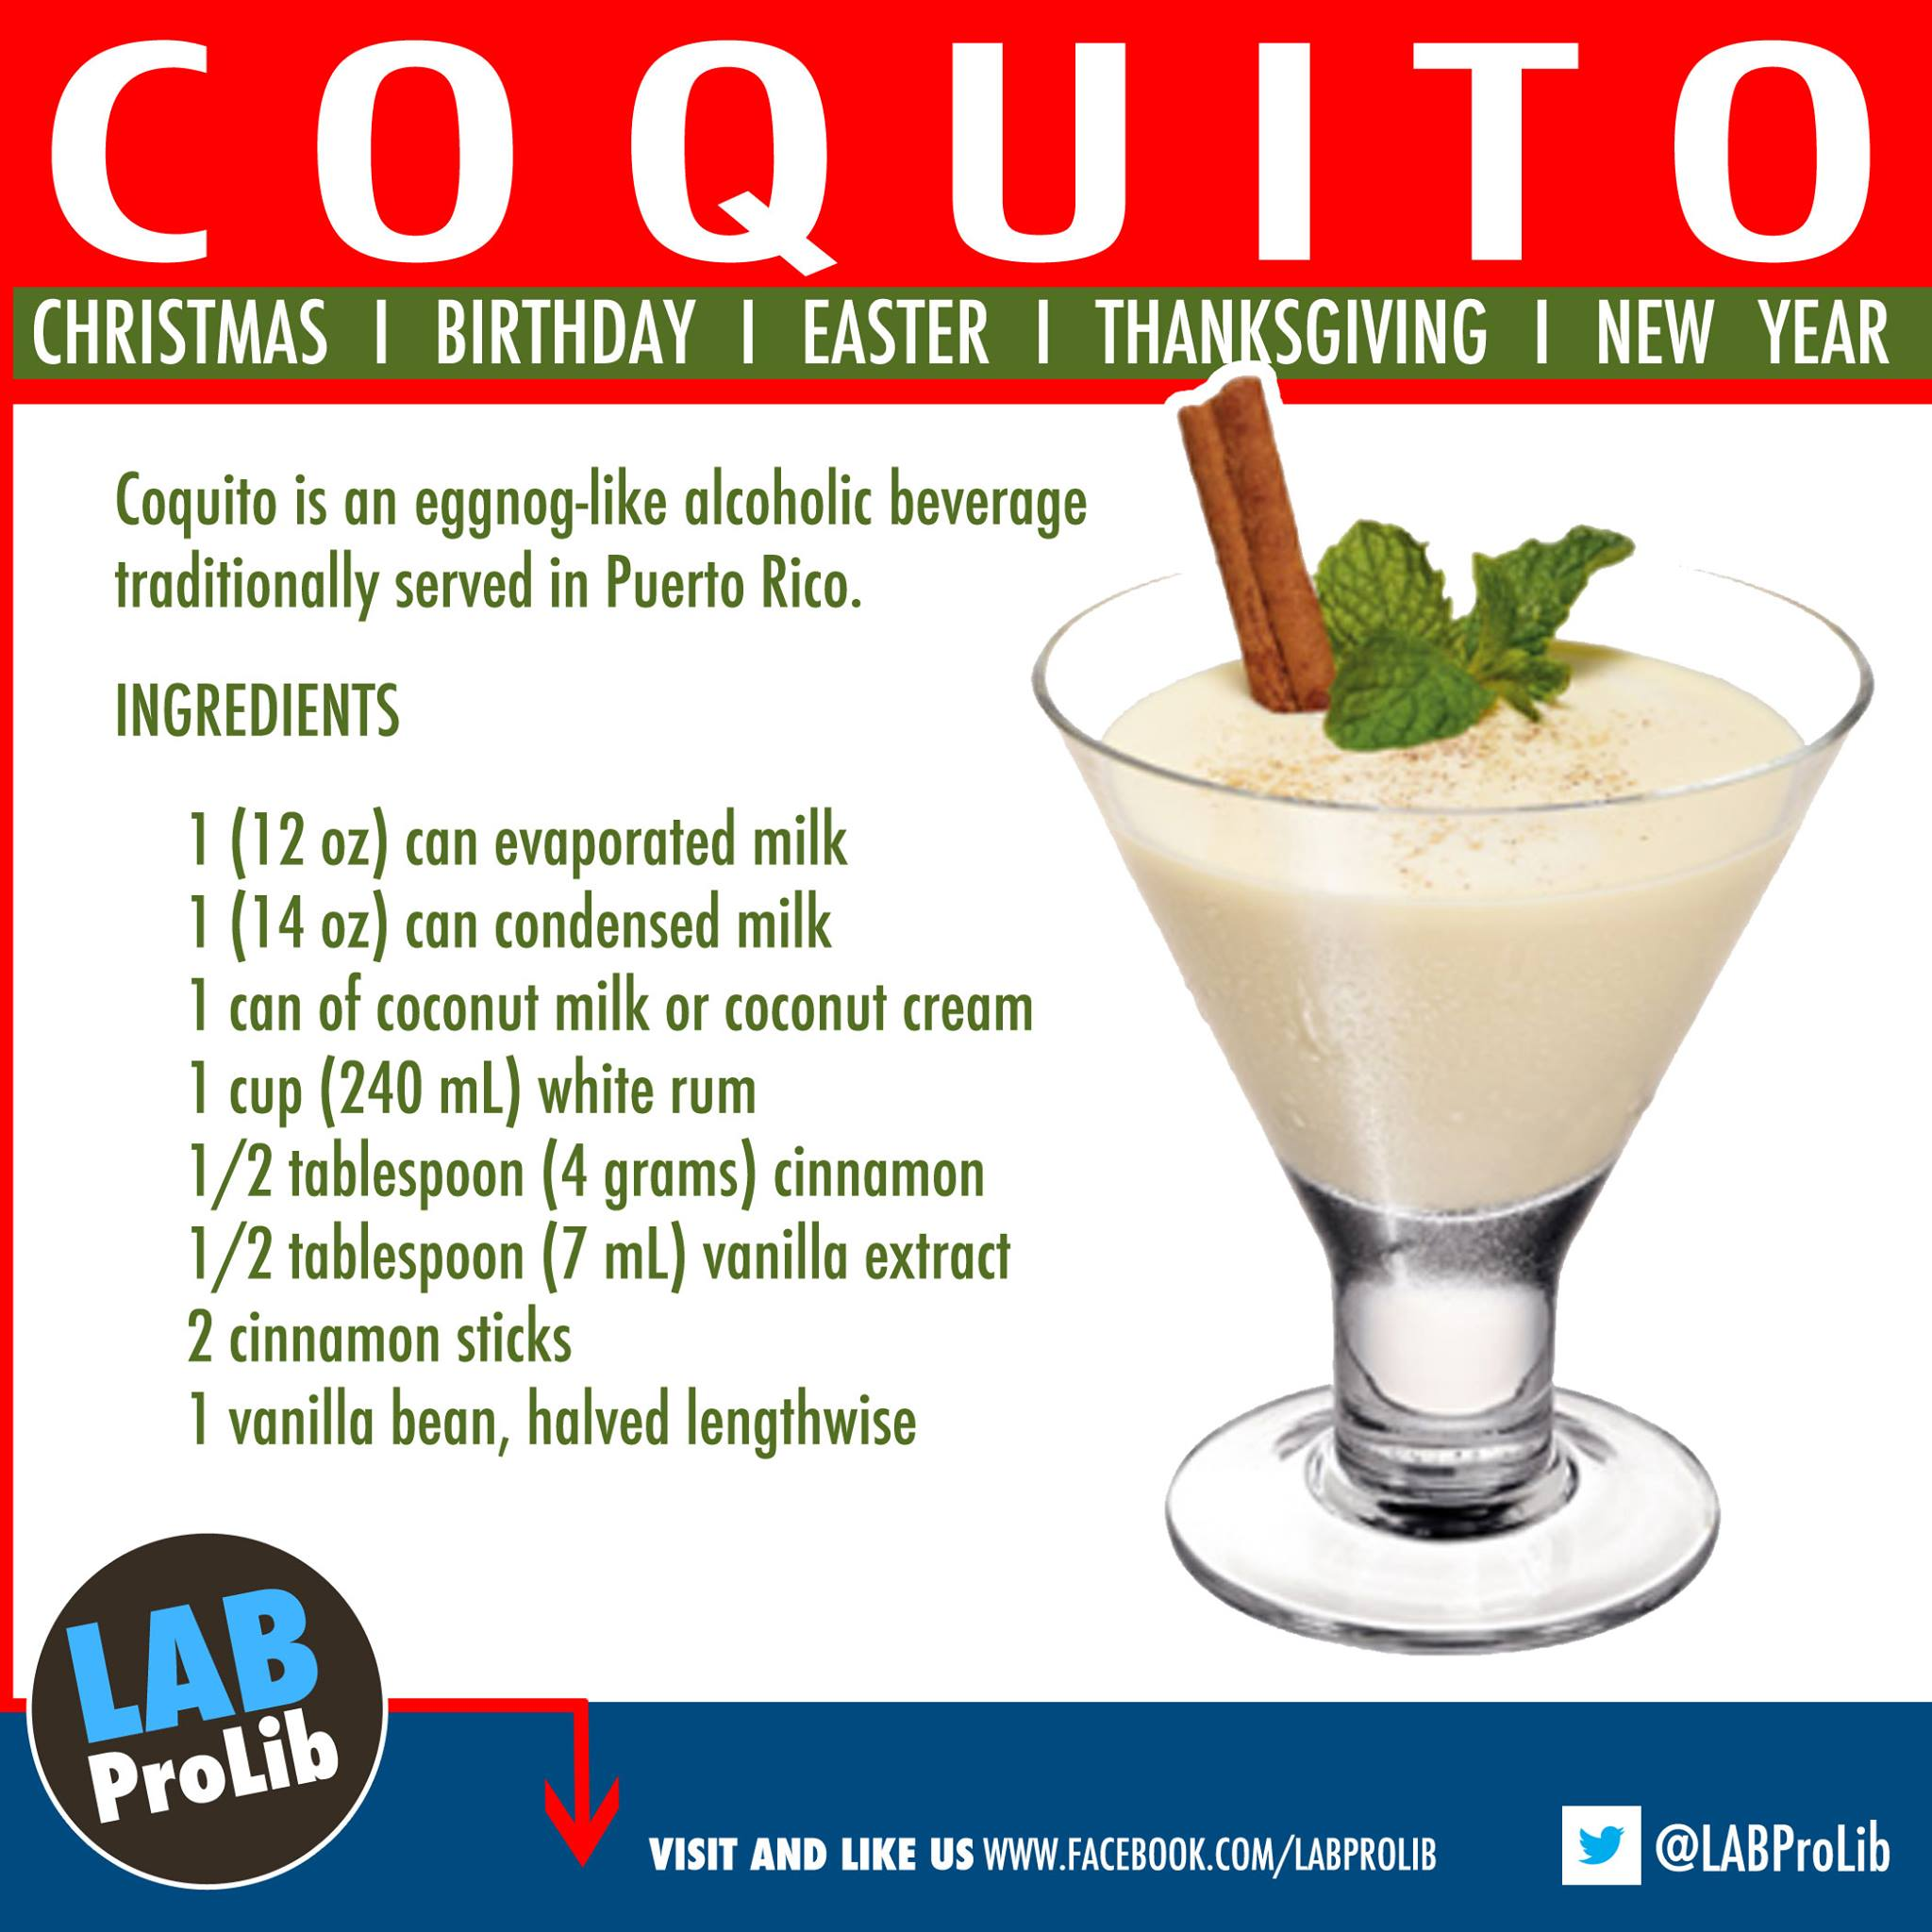 Holiday drink coquito is an eggnog like alcoholic beverage coquito is an eggnog like alcoholic beverage traditionally served in puerto rico it is made with rum coconut milk sweet condensed milk cinnamon forumfinder